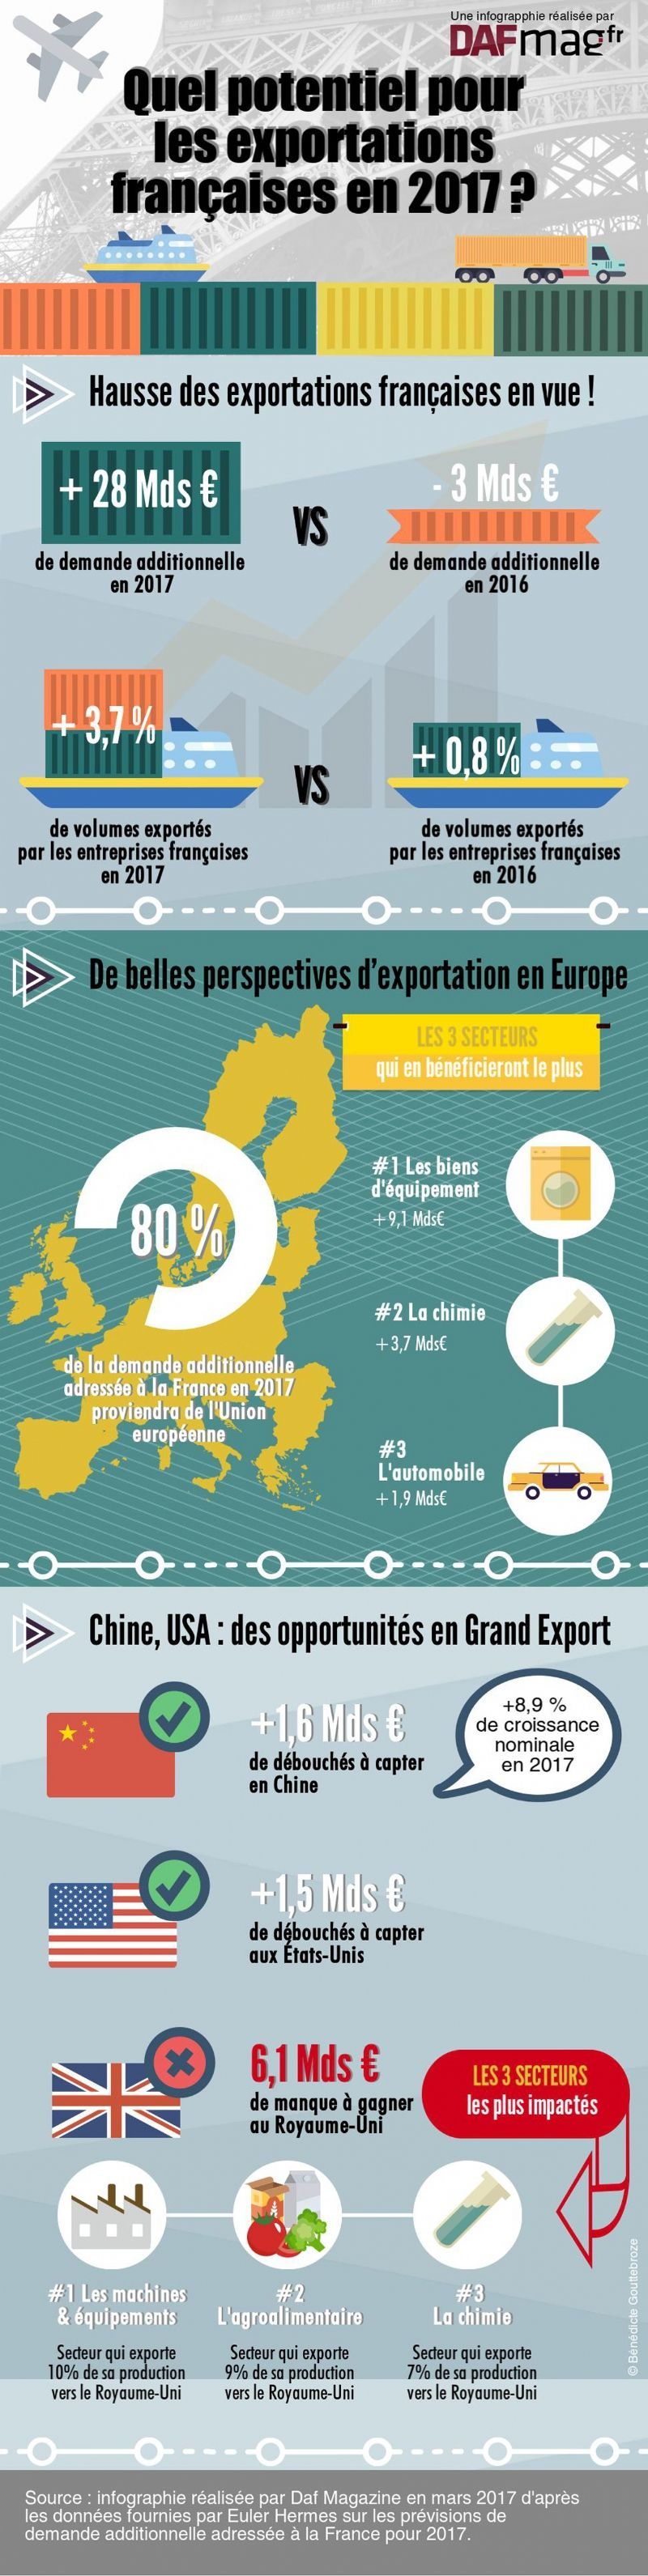 Exportations-belles-perspectives-France-2017-F